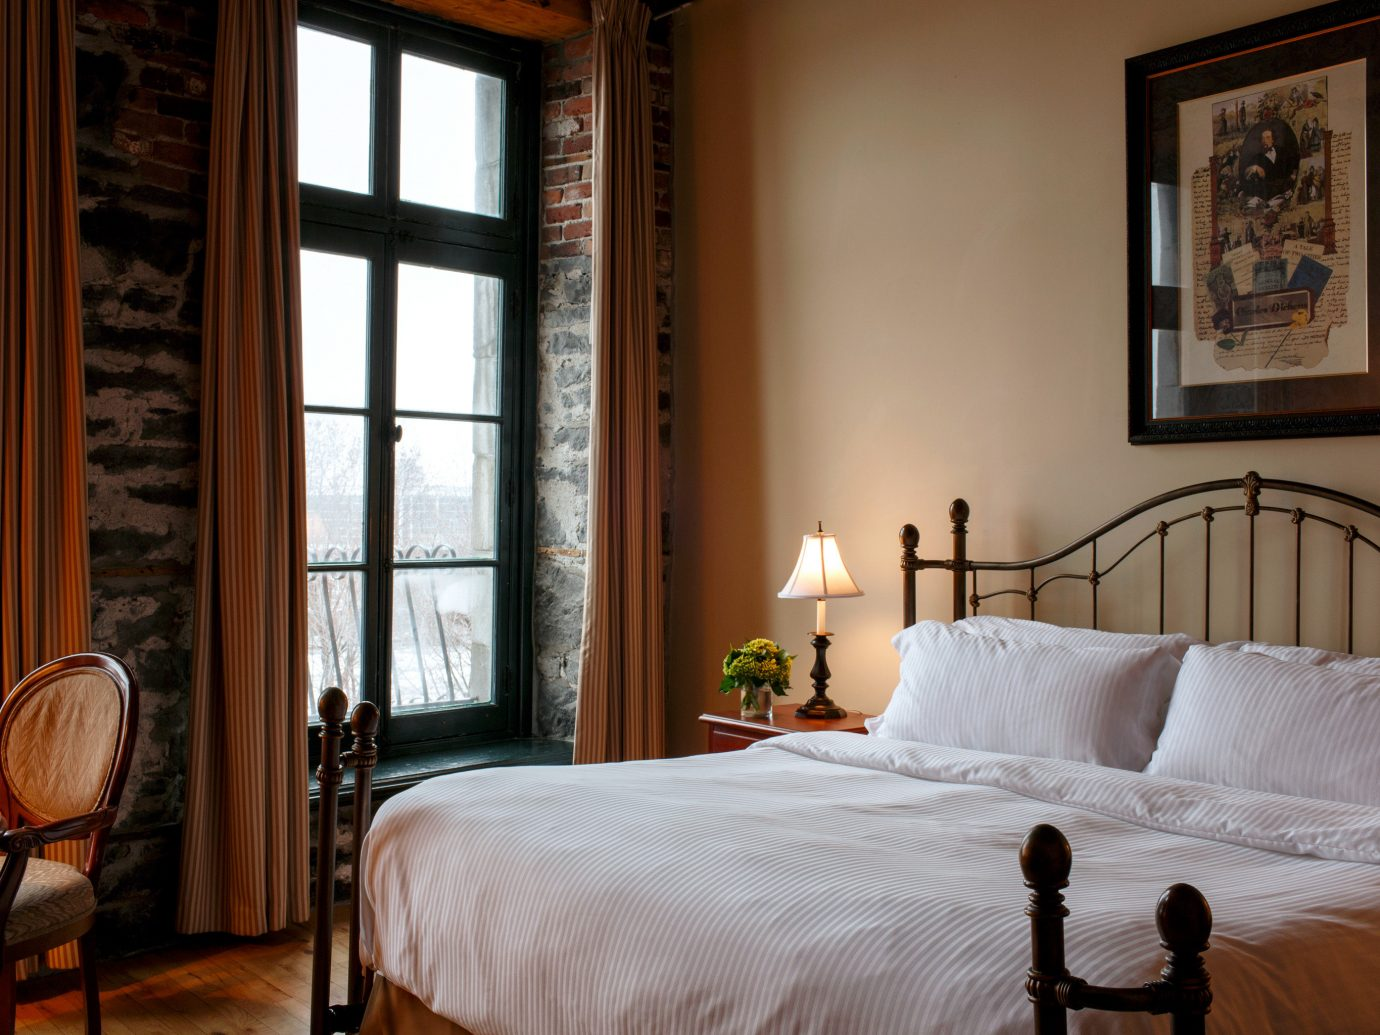 Bedroom Canada Hip Historic Hotels Luxury Montreal Suite Trip Ideas indoor bed wall room window property estate home cottage interior design floor farmhouse living room real estate